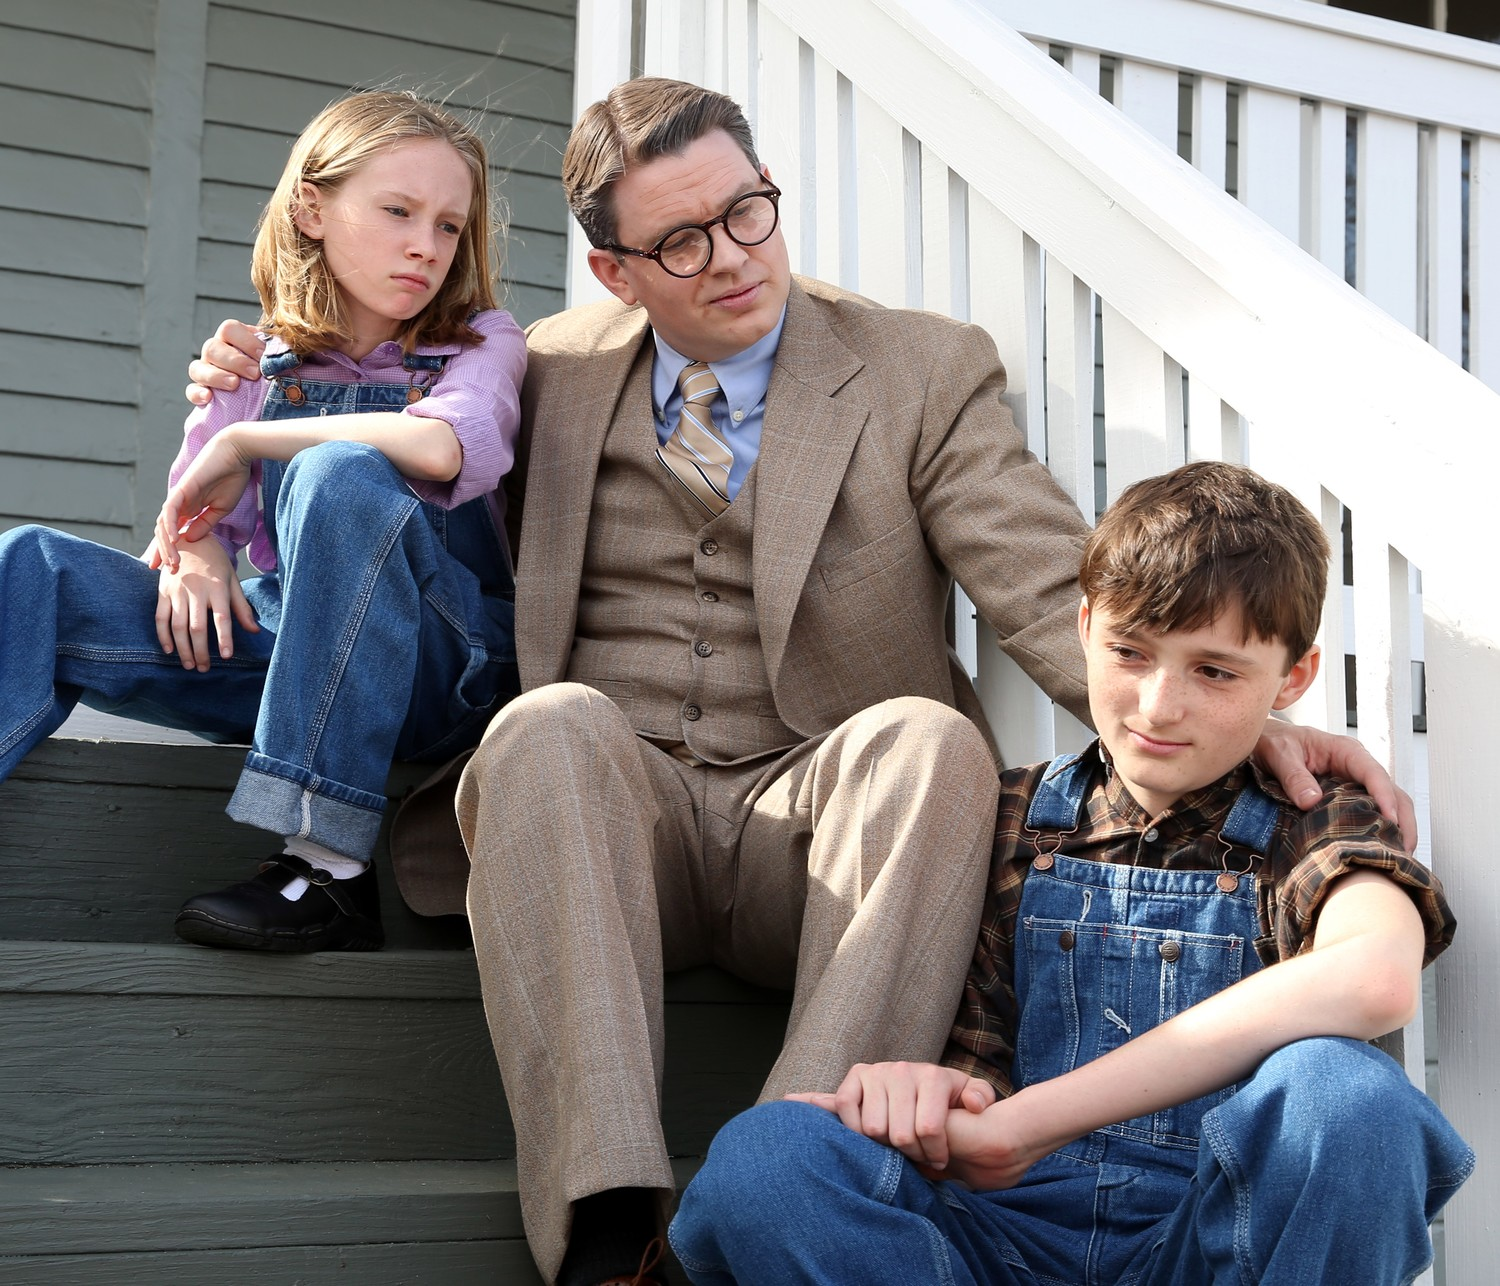 BWW Interview: Christopher Rose, director of TO KILL A MOCKINGBIRD at Mill Town Players